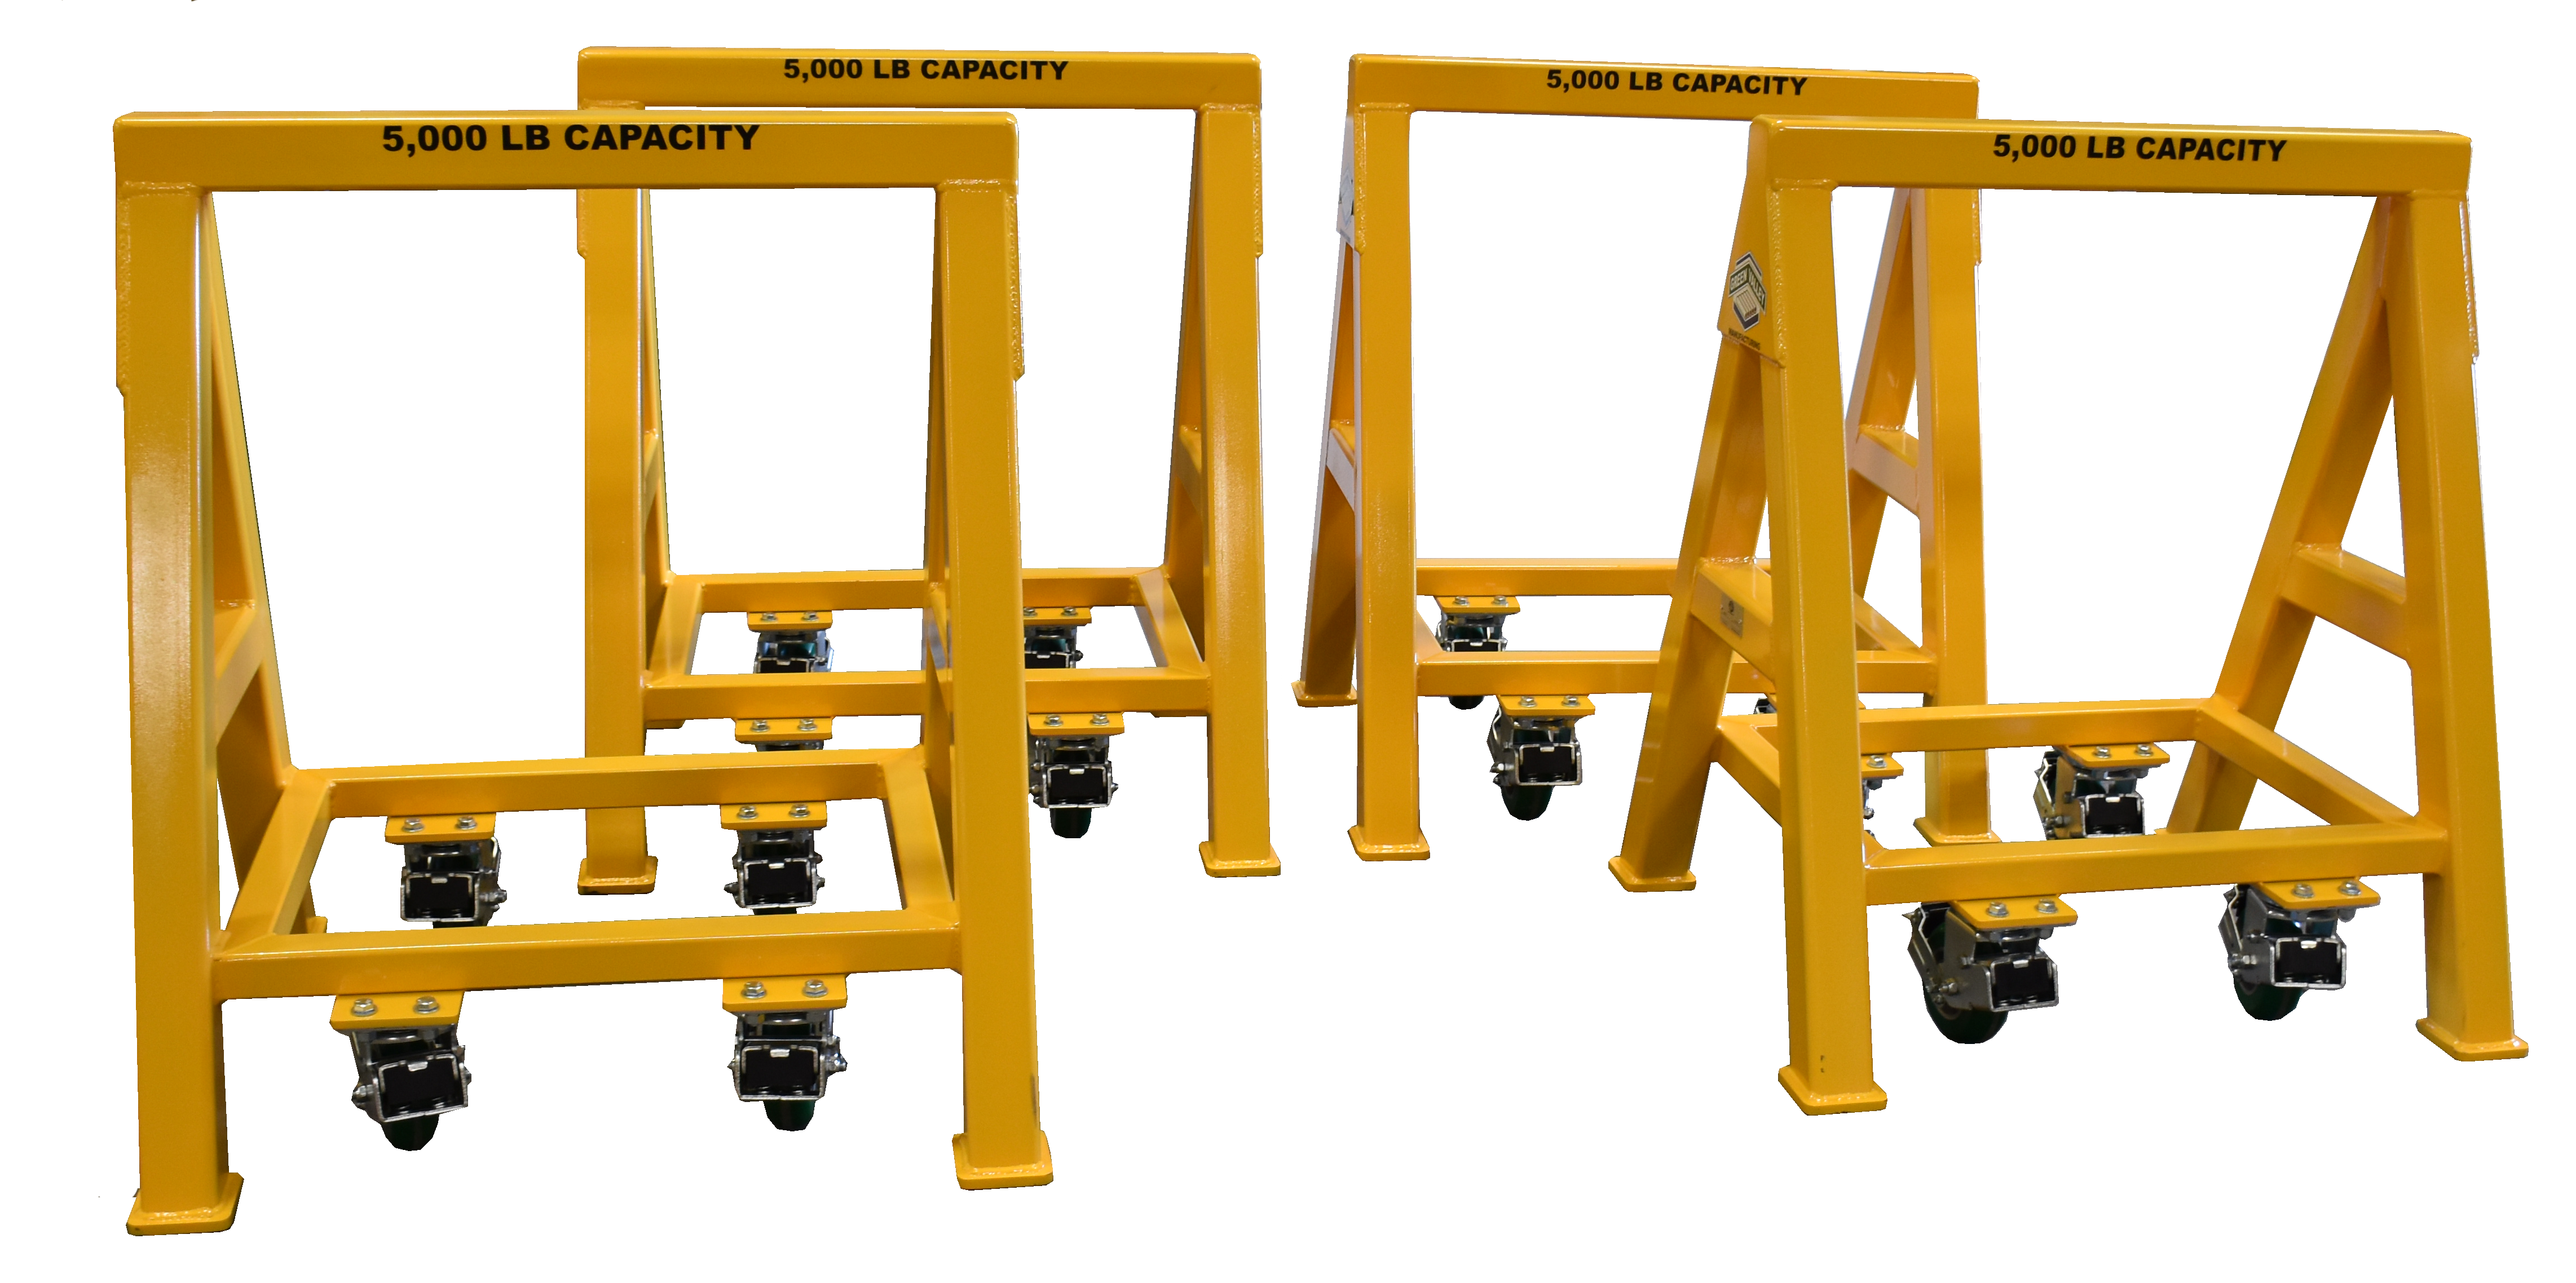 Heavy Duty Industrial steel sawhorse 5,000 LB. Steel Top Spring Loaded Compression Caster (184327)